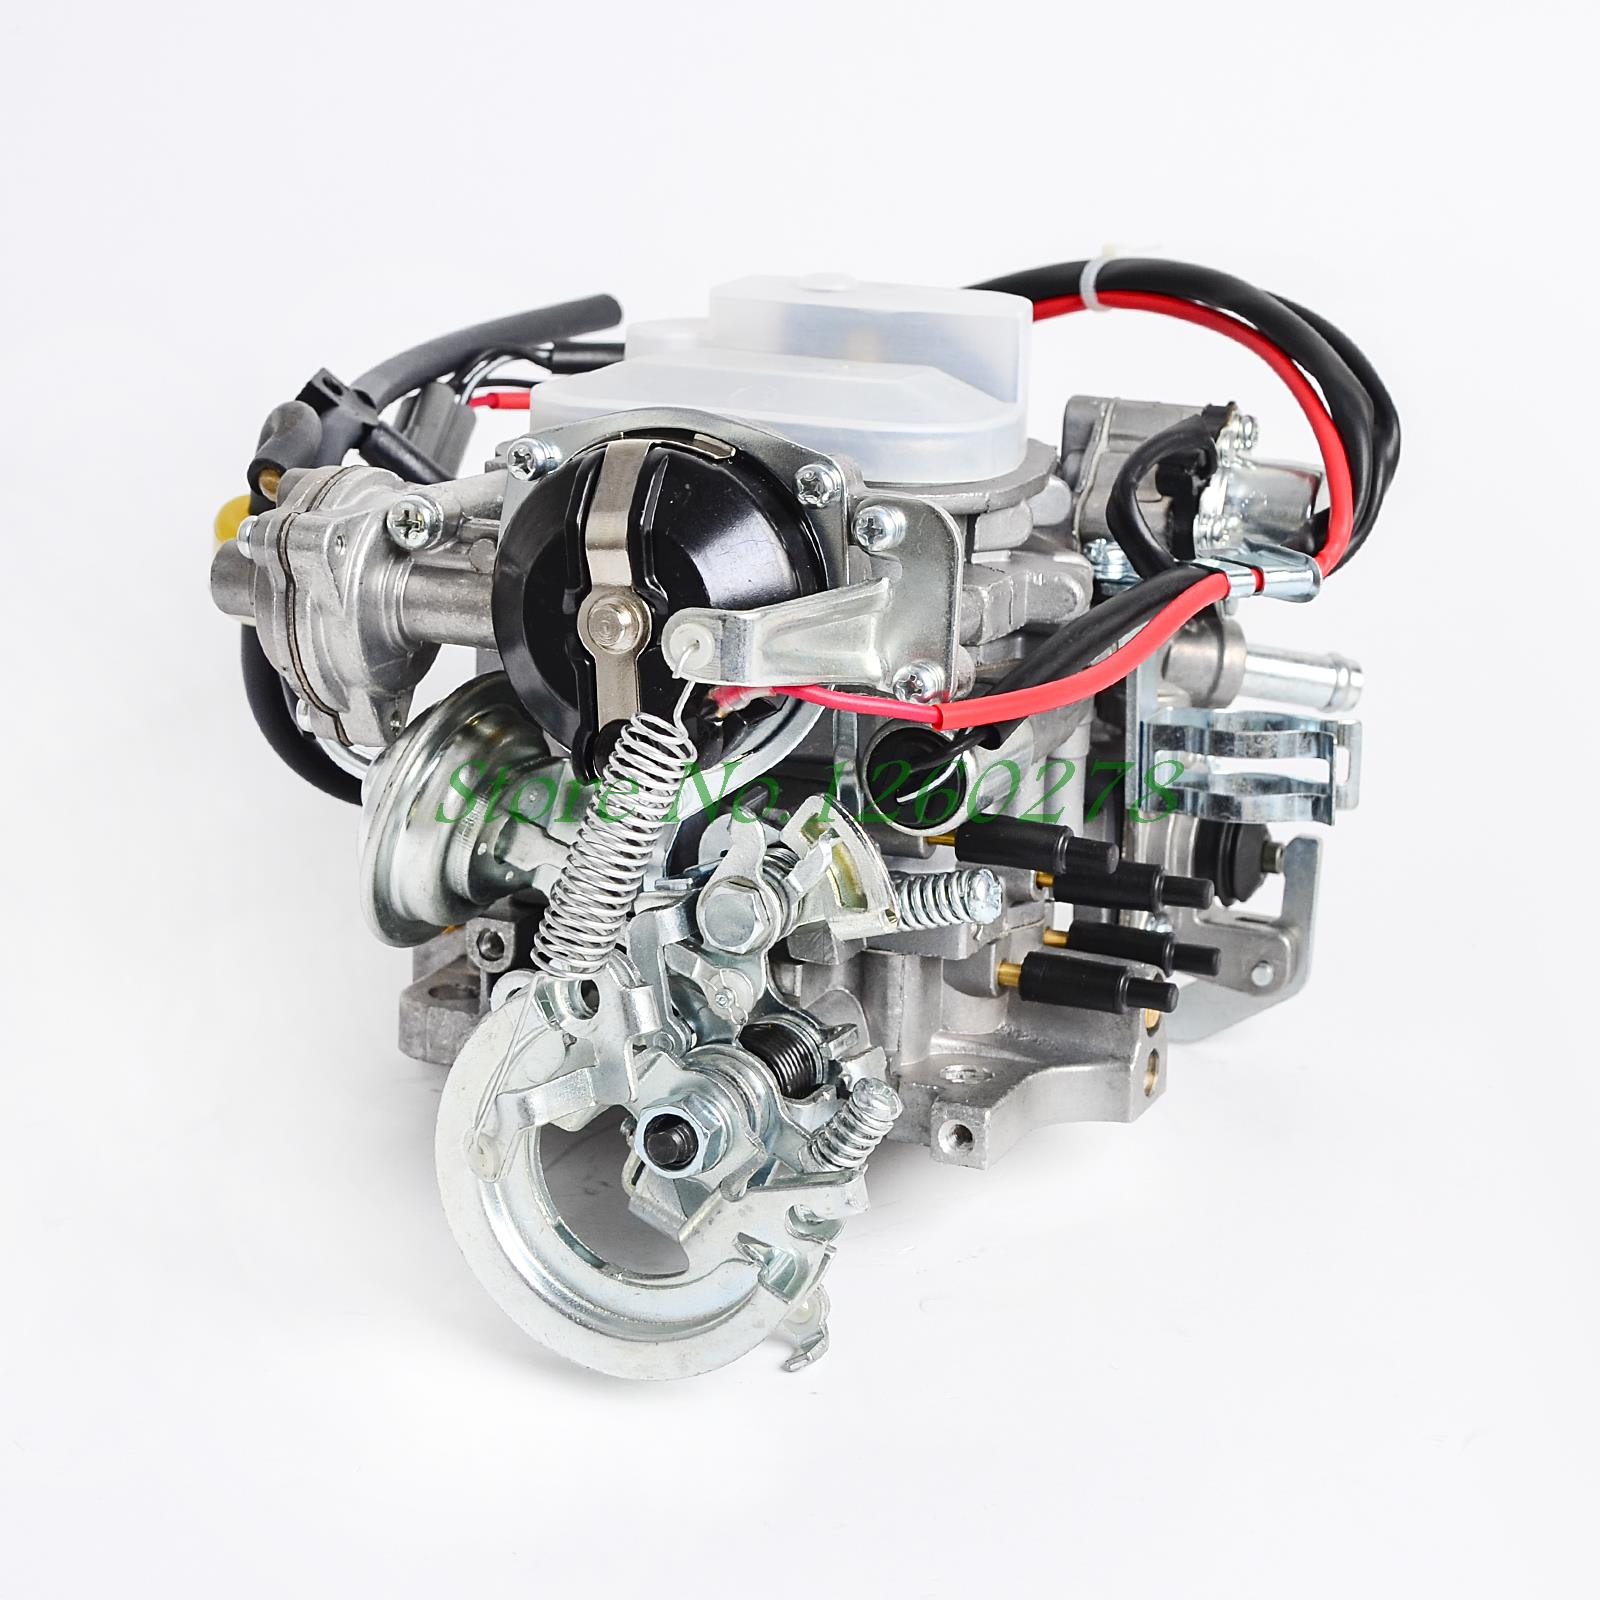 New High Quality CARBIE CARB Carby Carburetor for TOYOTA 4 RUNNER HILUX 21R 22R 21100-35530 21100-35520 high quality carburetor carb carby for husqvarna partner 350 351 370 371 420 chainsaw poulan spare parts walbro 33 29